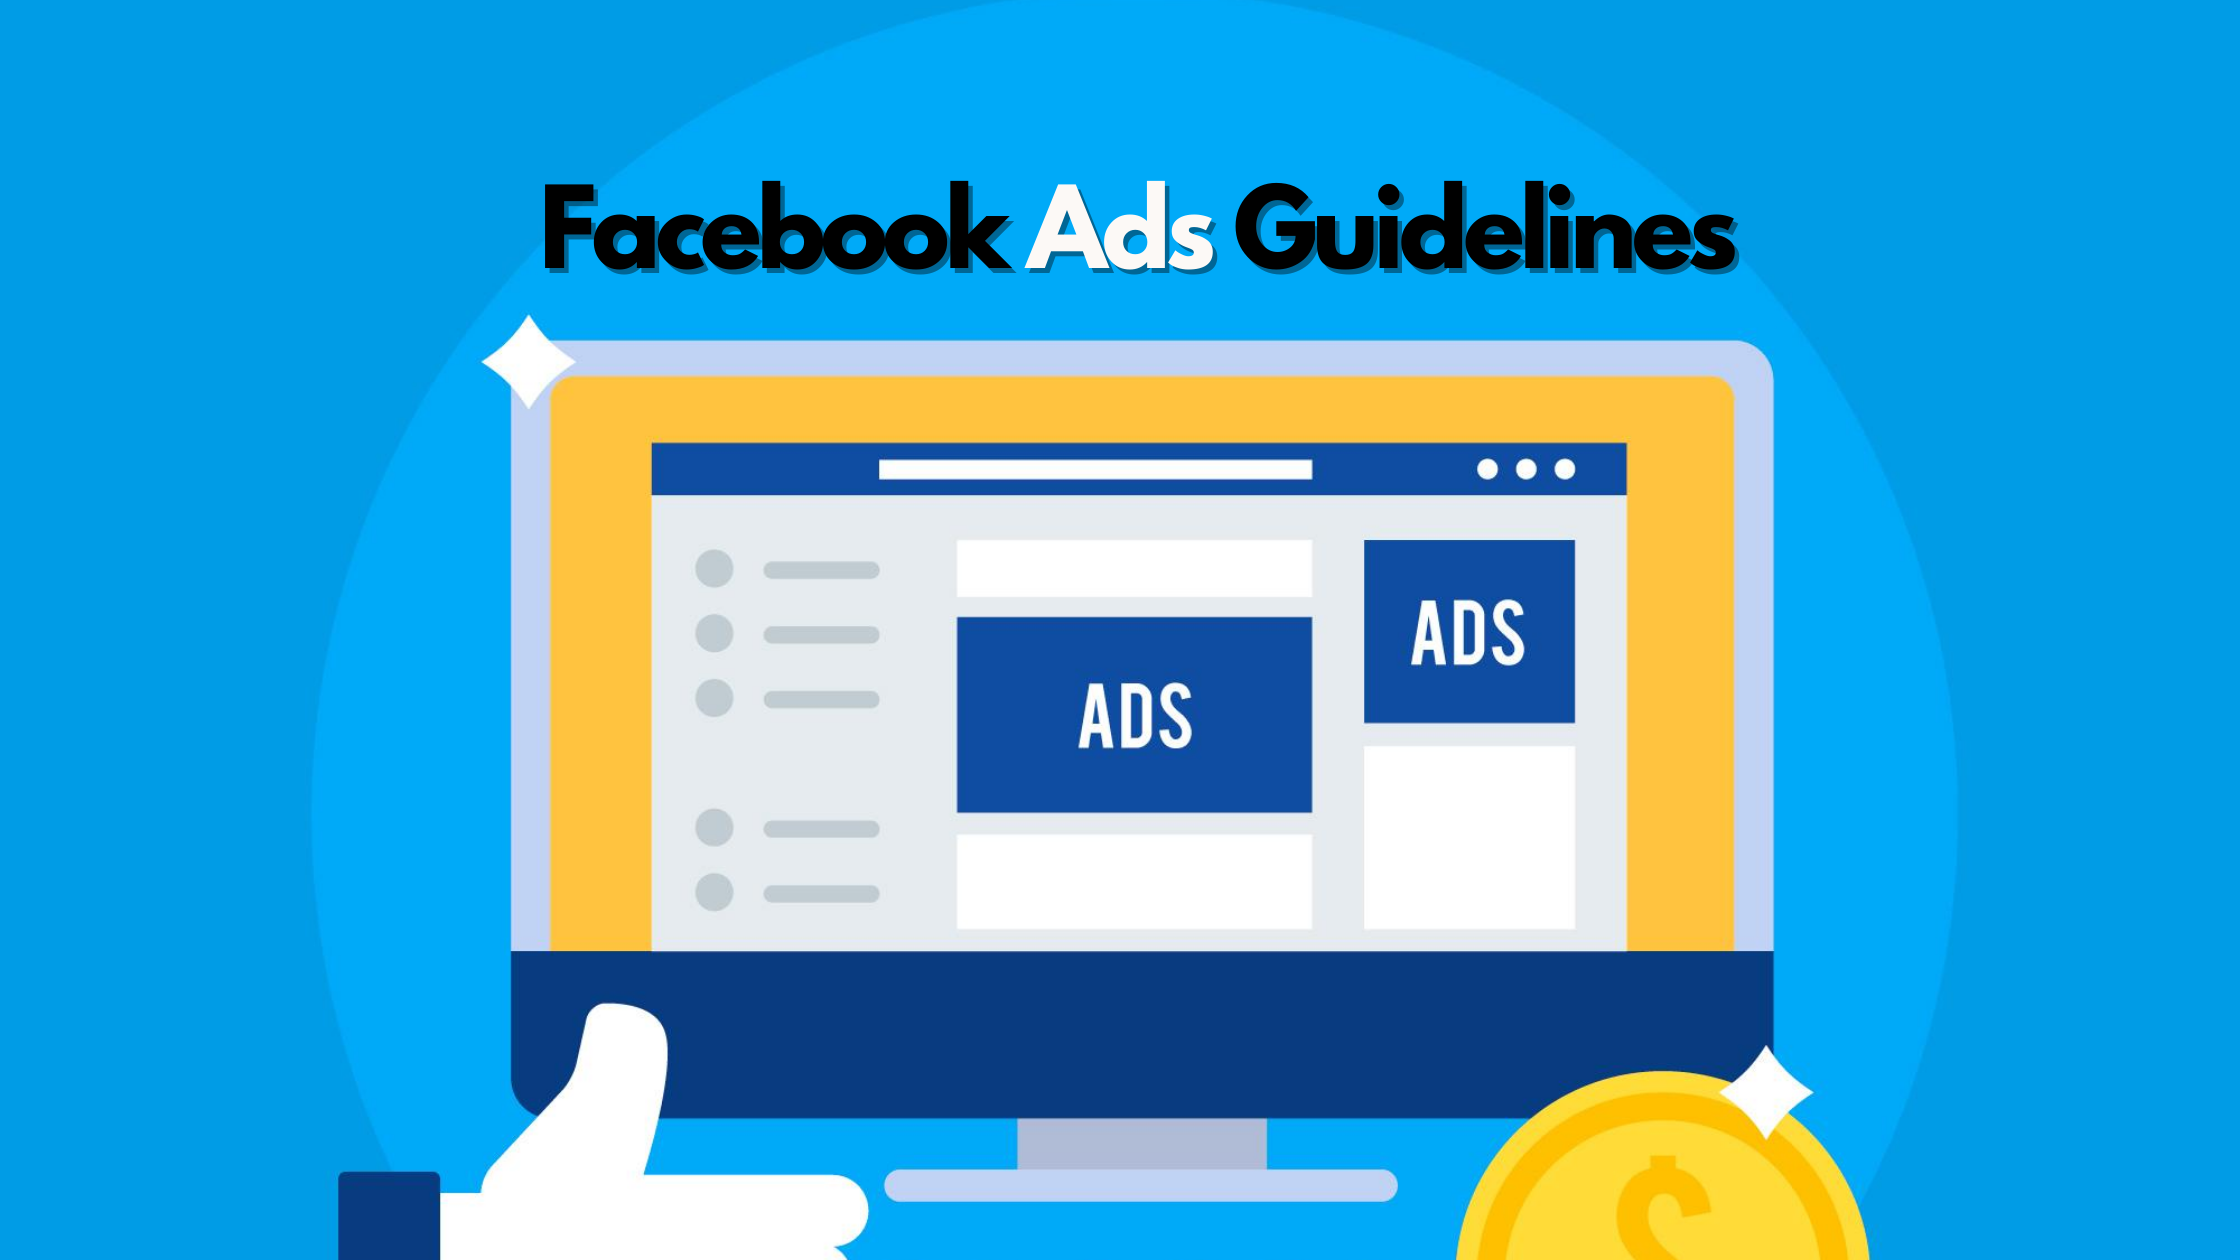 Wondering why Facebook rejected your ad?